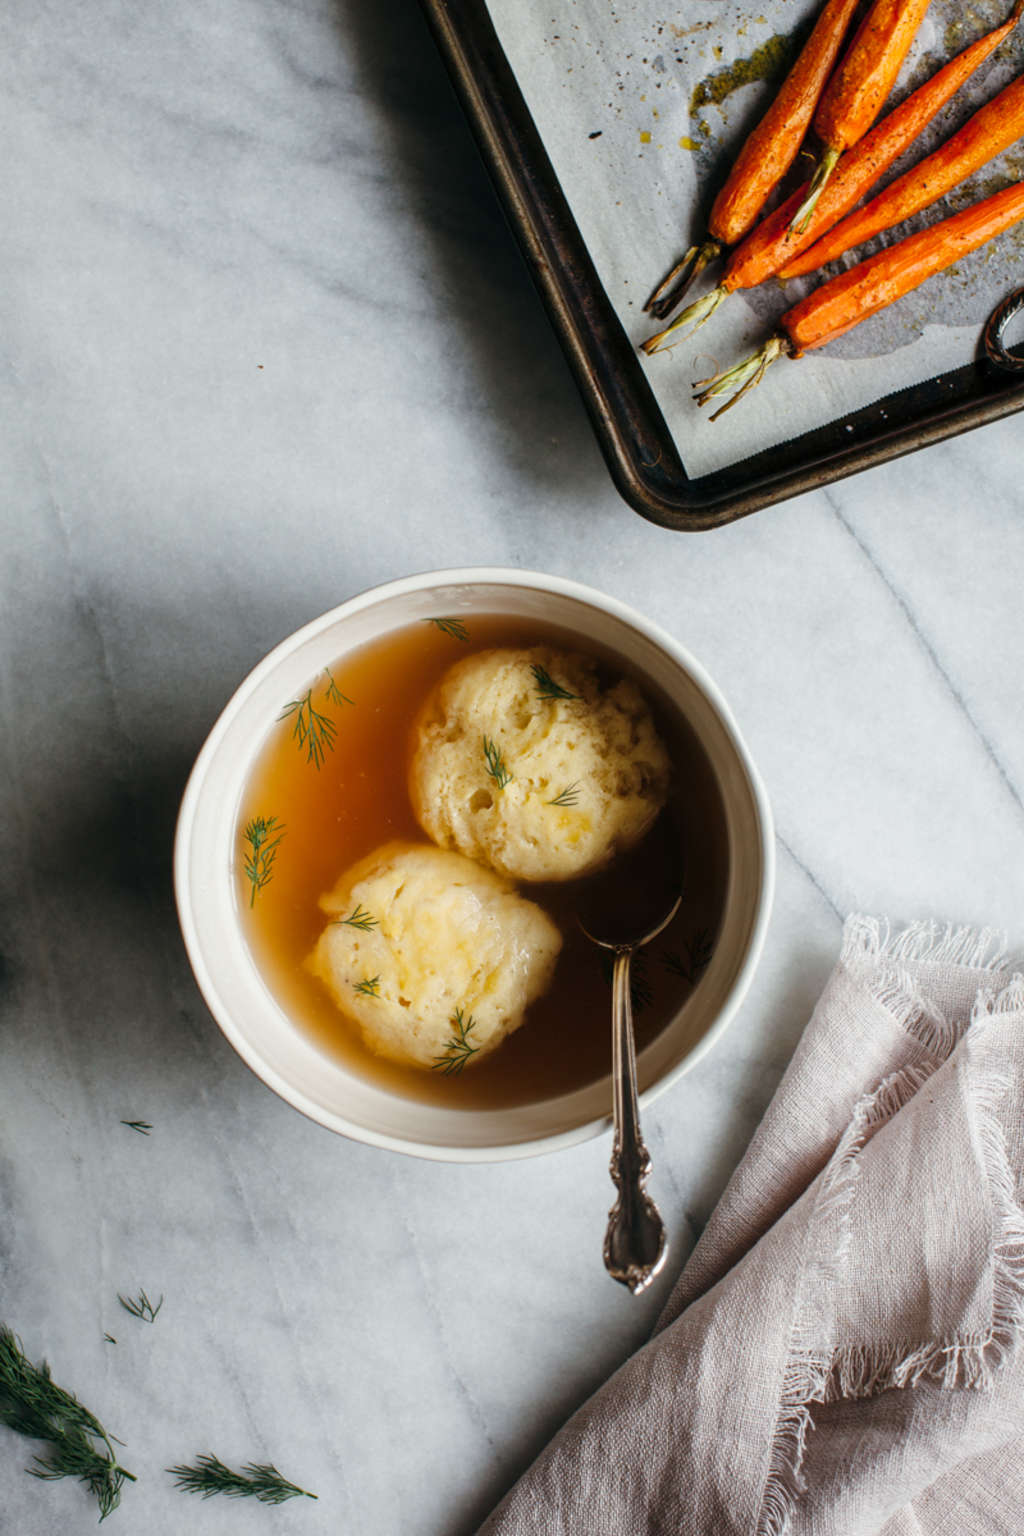 You Won't Want to Pass Over This Gluten-Free Matzo Ball Soup